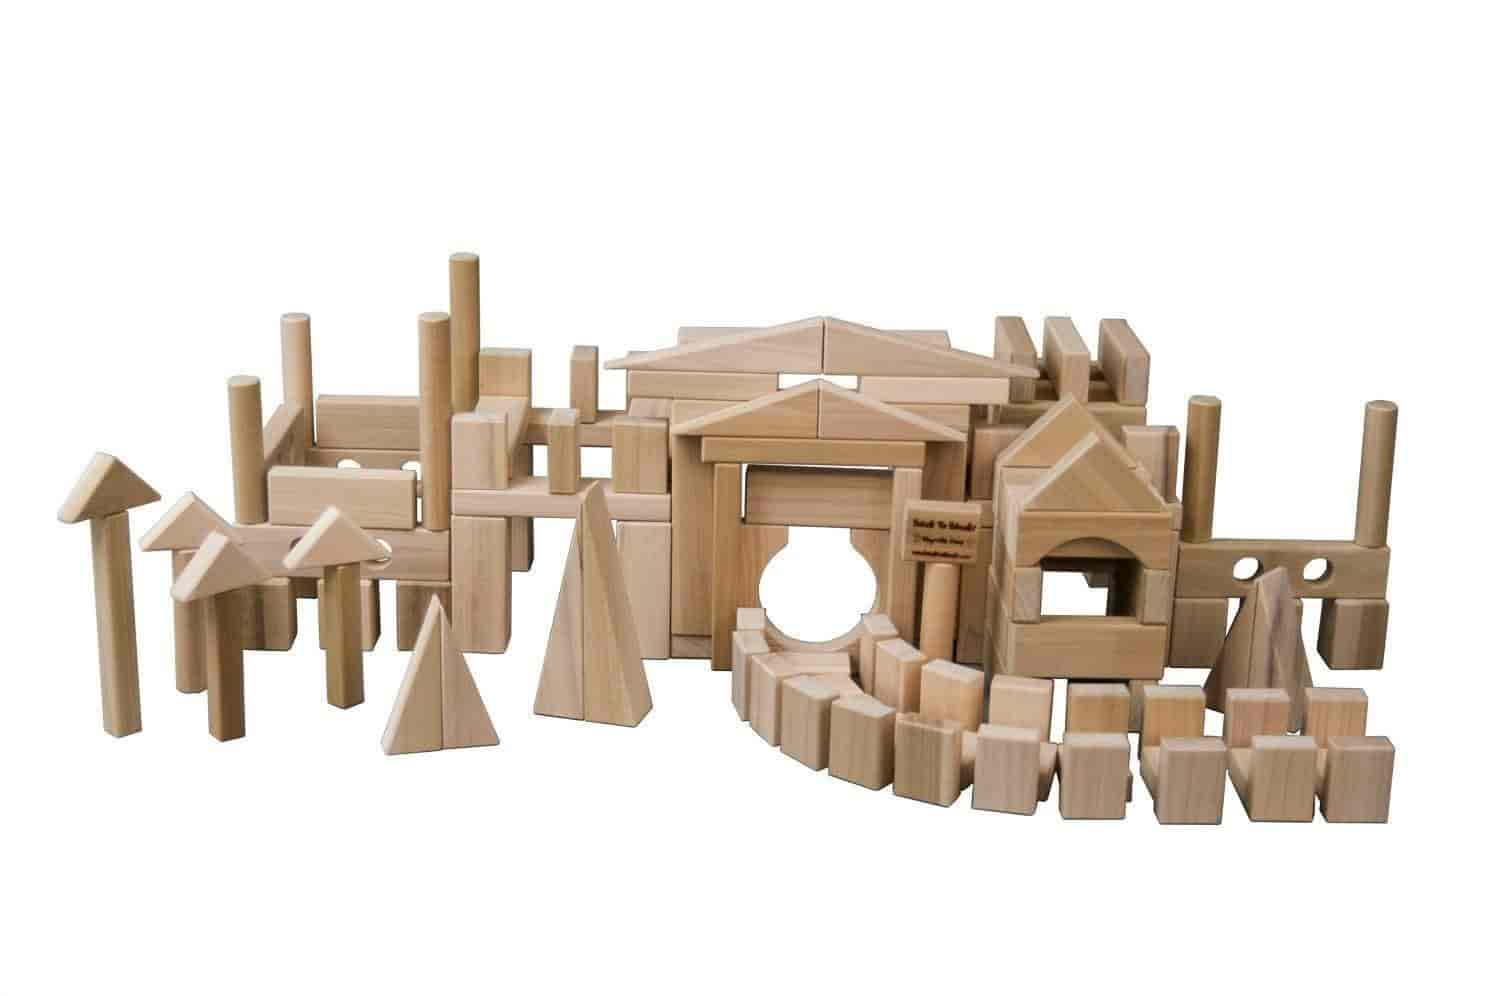 Exceptionnel Wooden Blocks Super Stacker Large Wooden Block Set 200 Wooden Building  Blocks For Kids In A